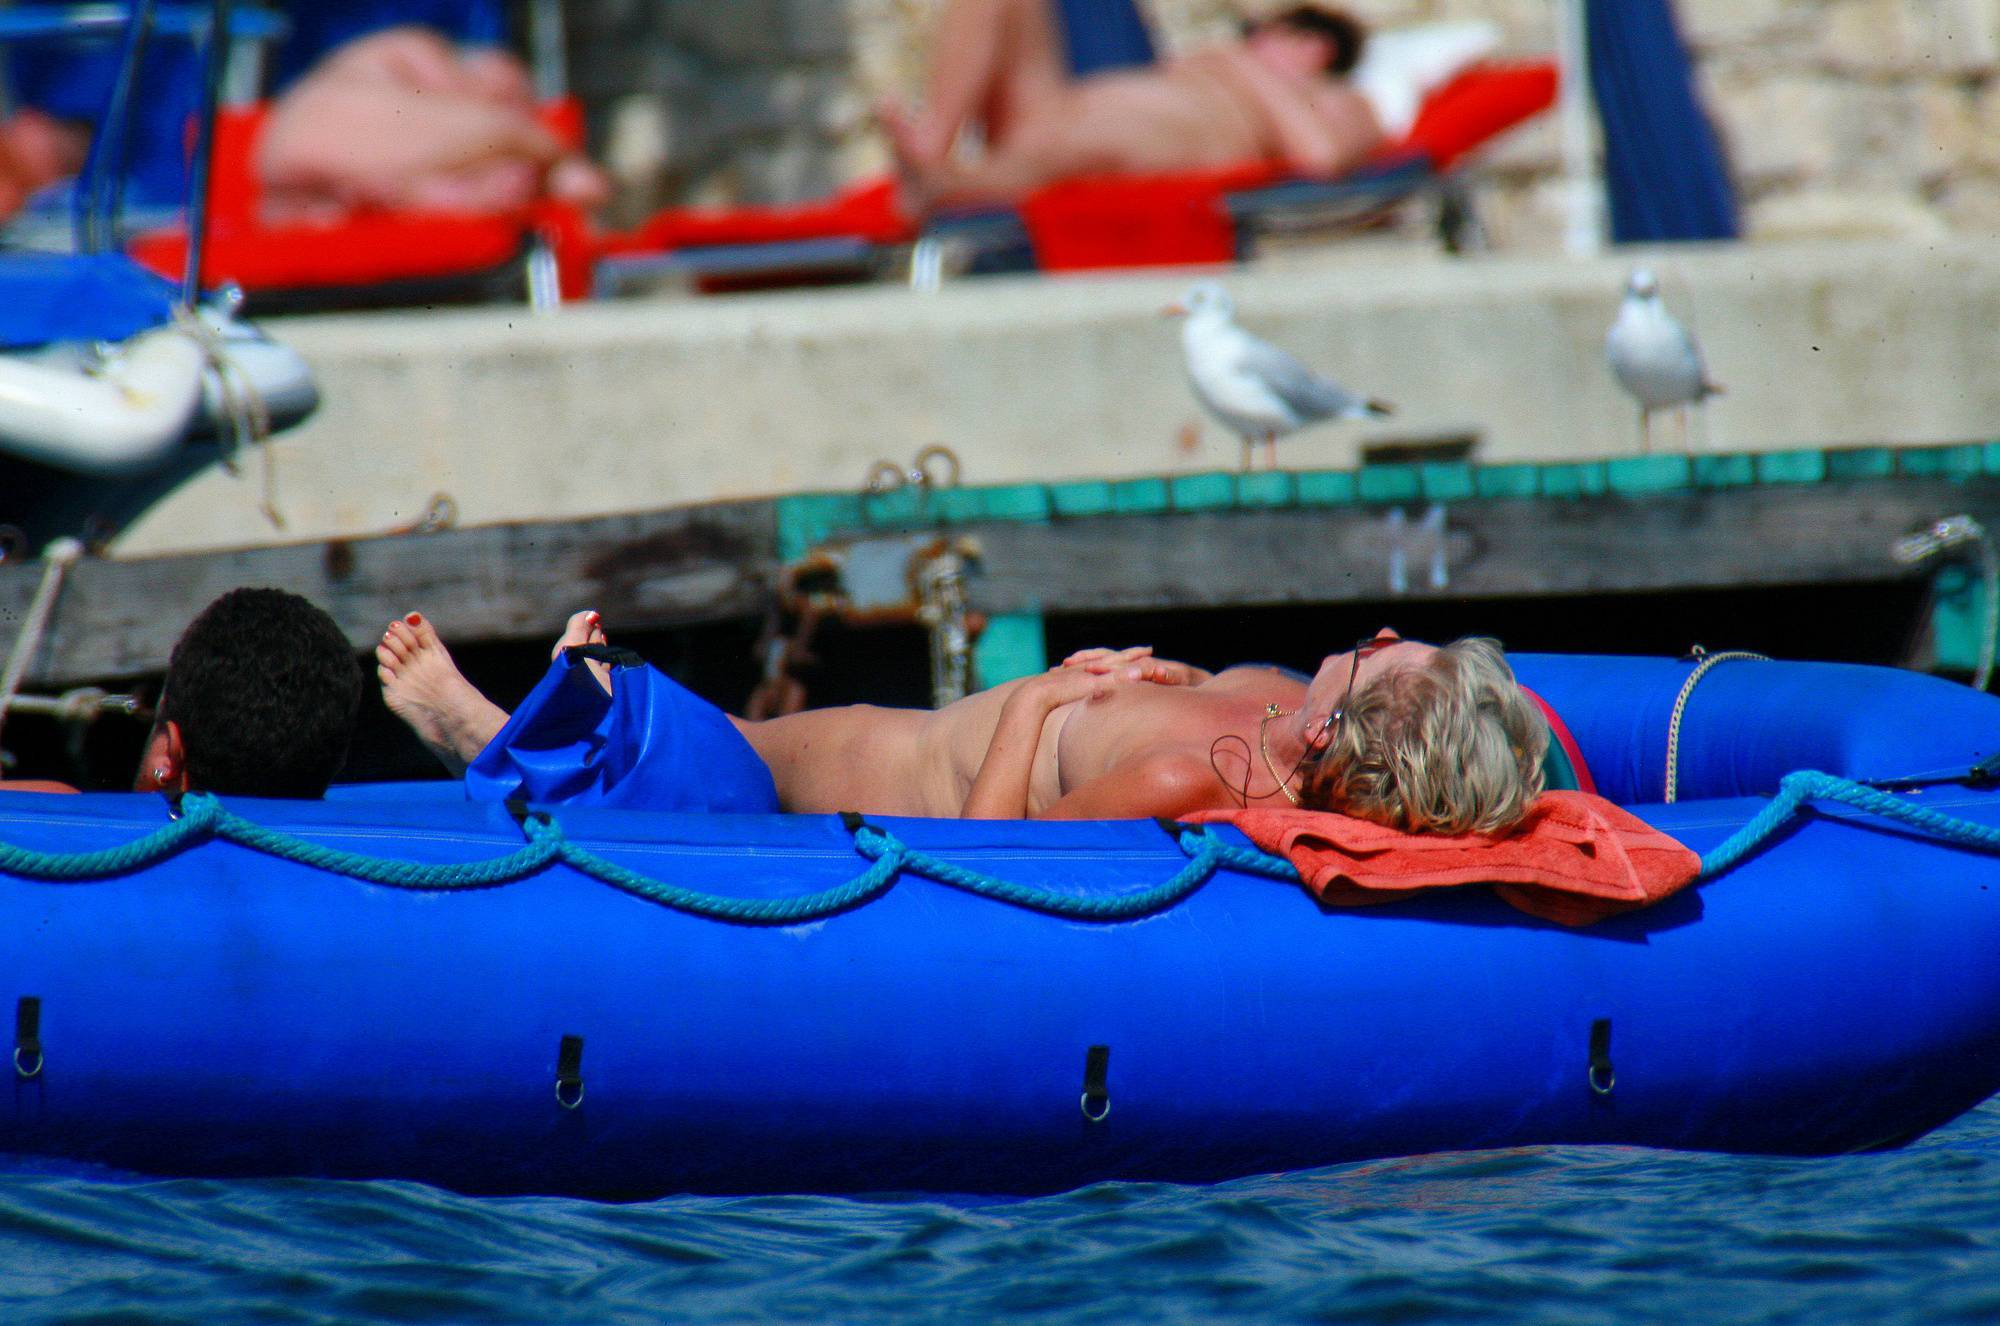 Pure Nudism Images Uka FKK In-Water Boating - 2